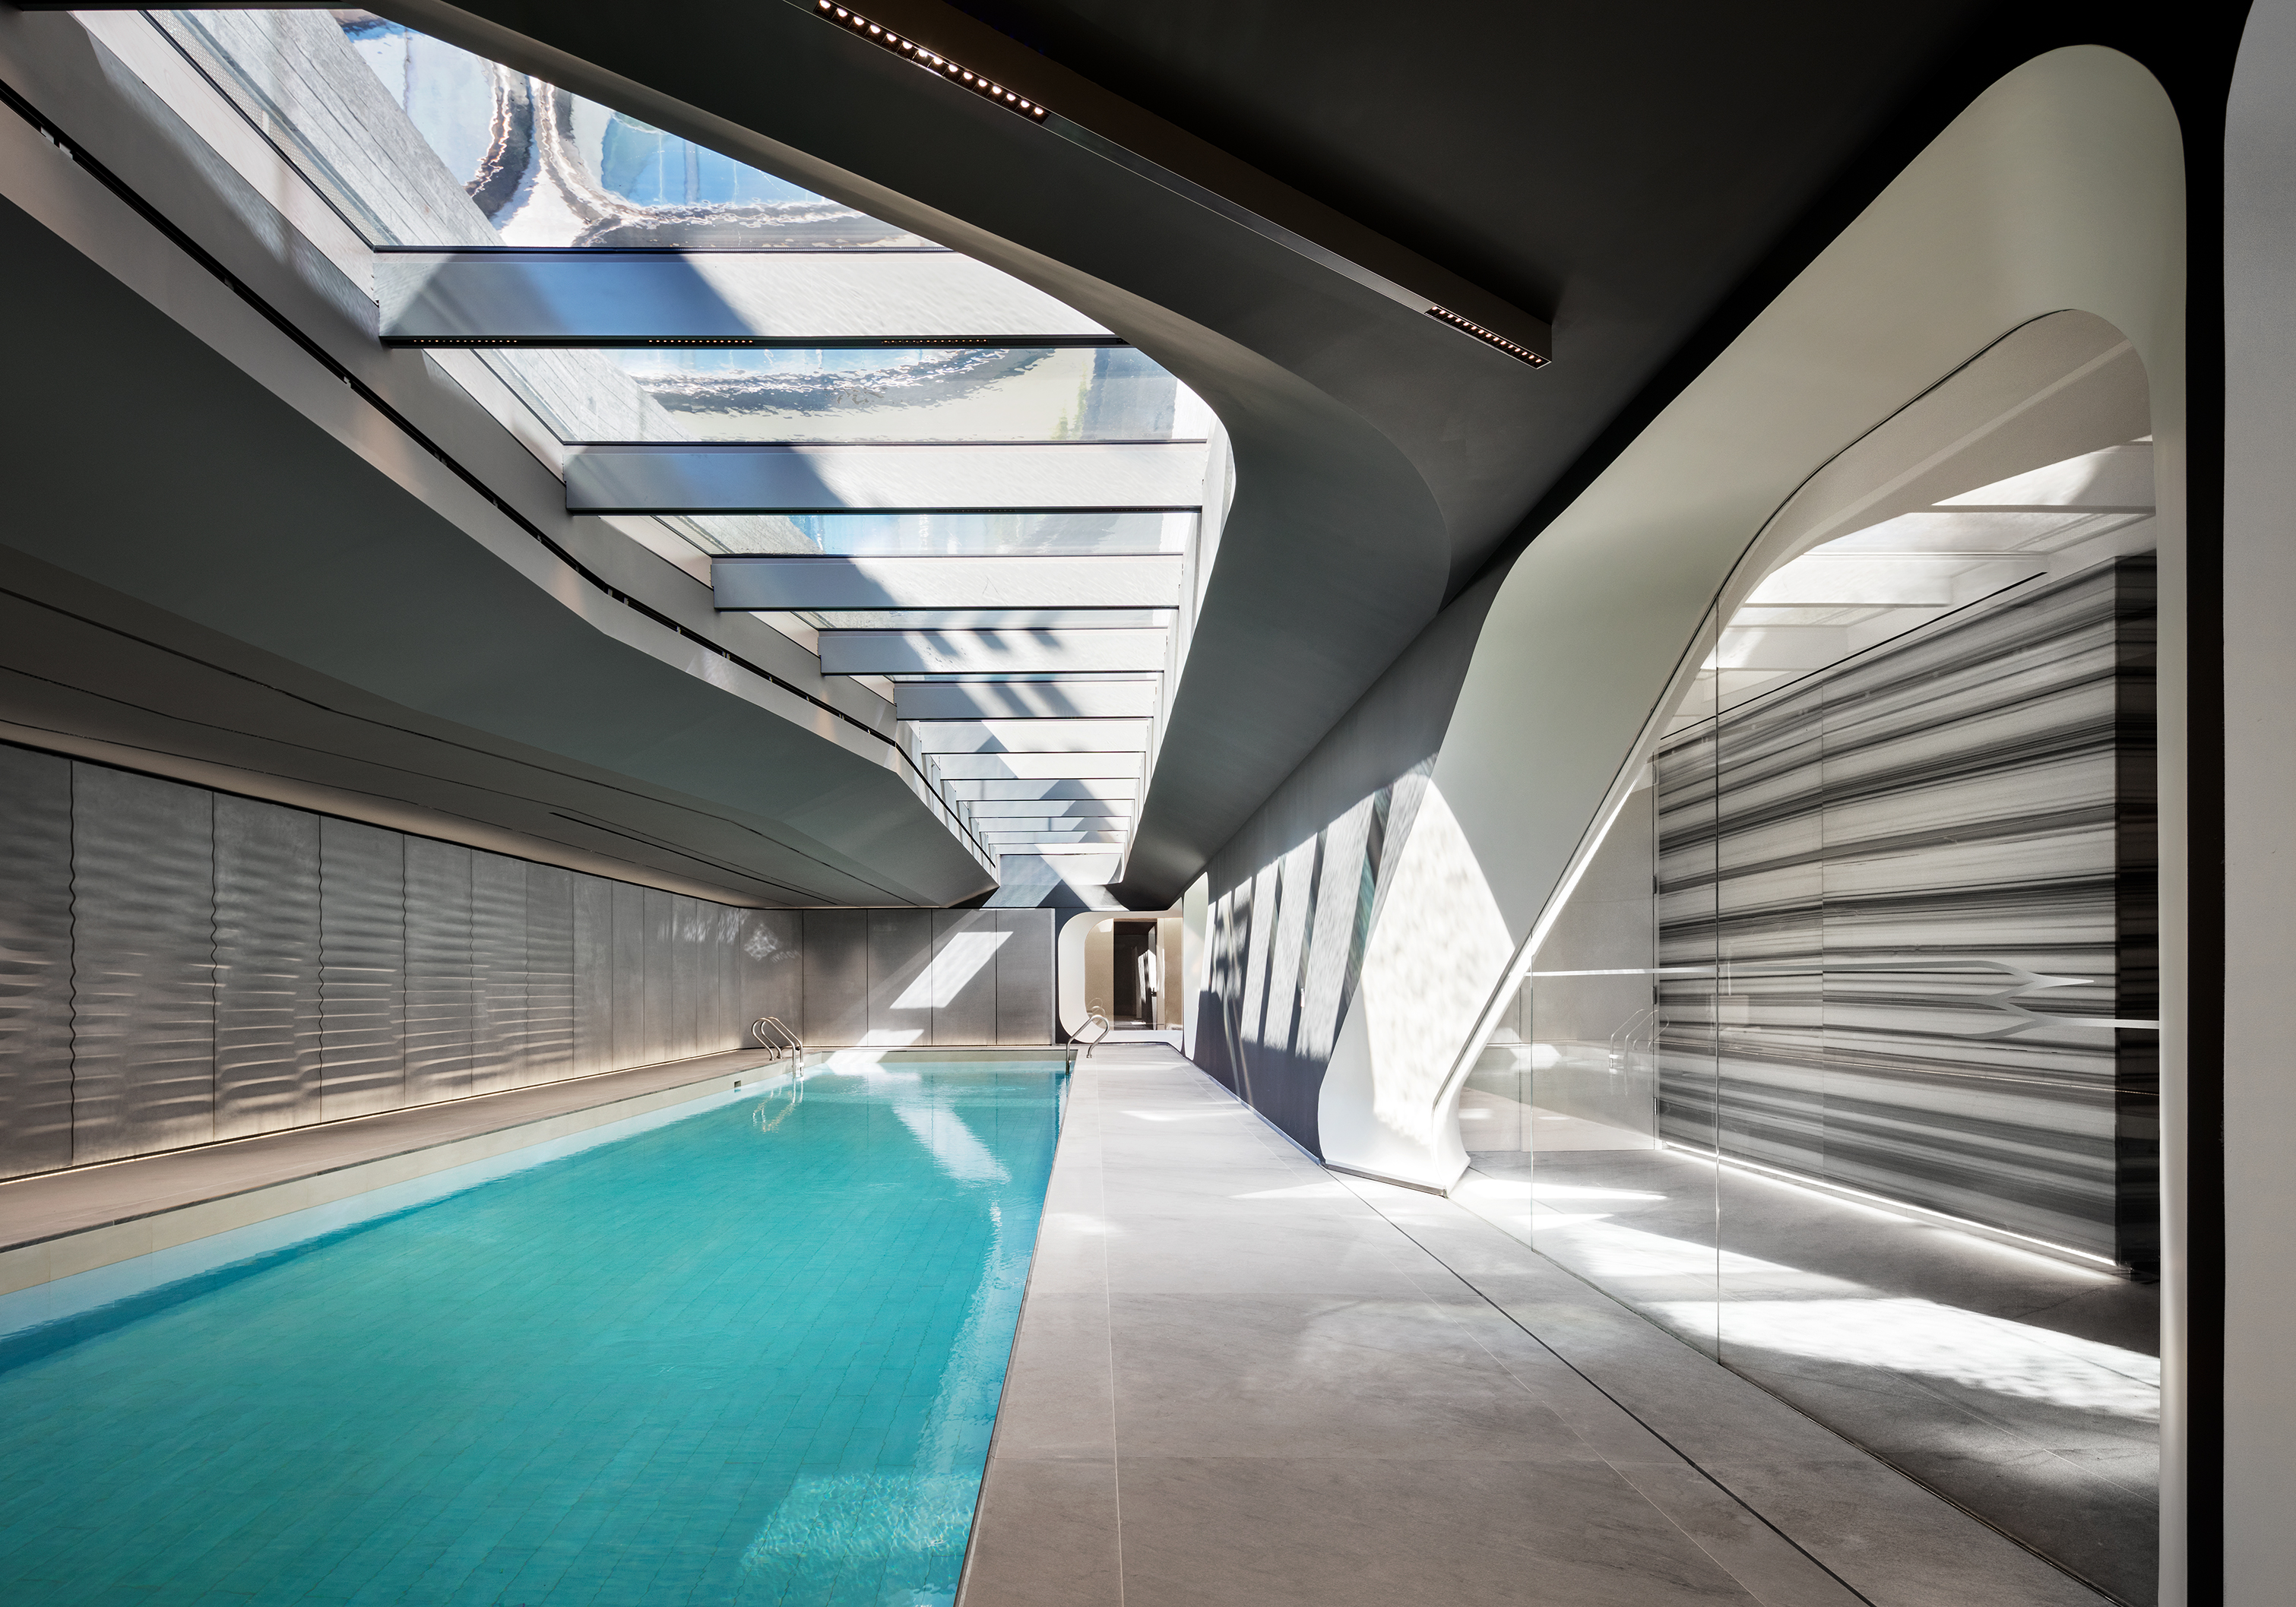 http://content.related.com/Chelsea Condominium Pool